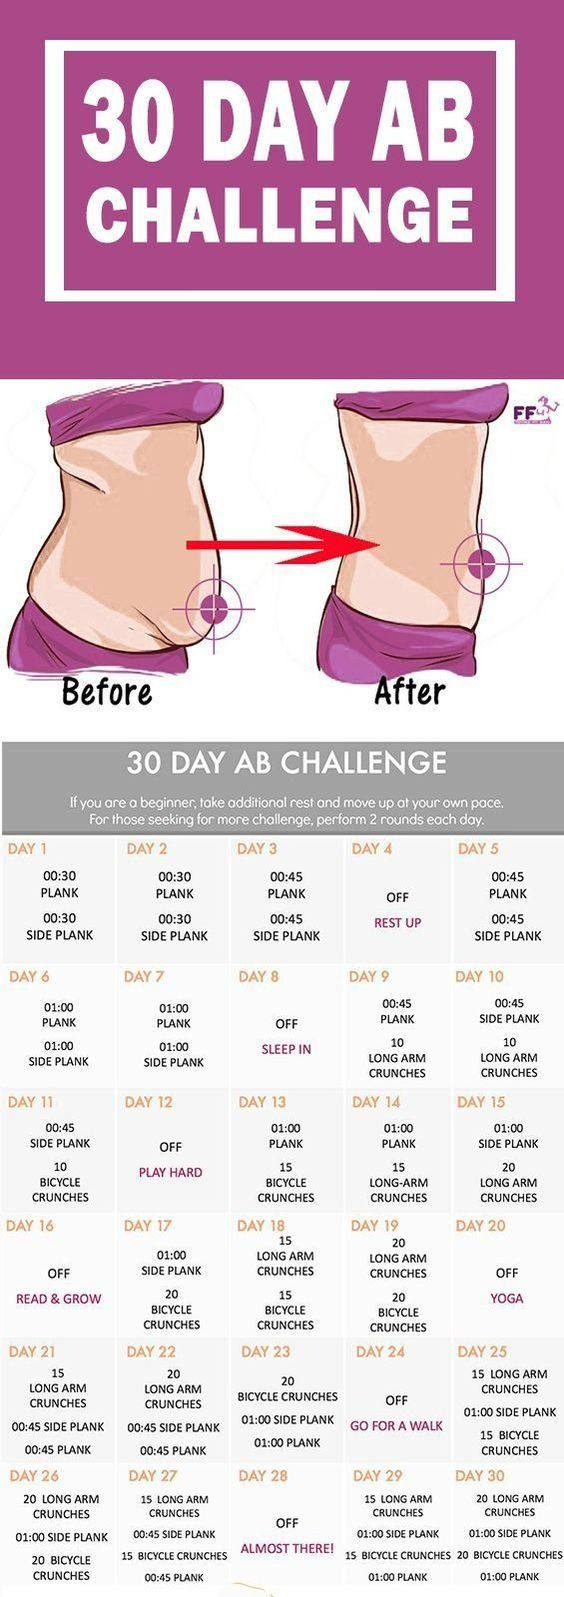 """fitnessforevertips: """"Everything you need to lose weight, build muscle & look great! """""""